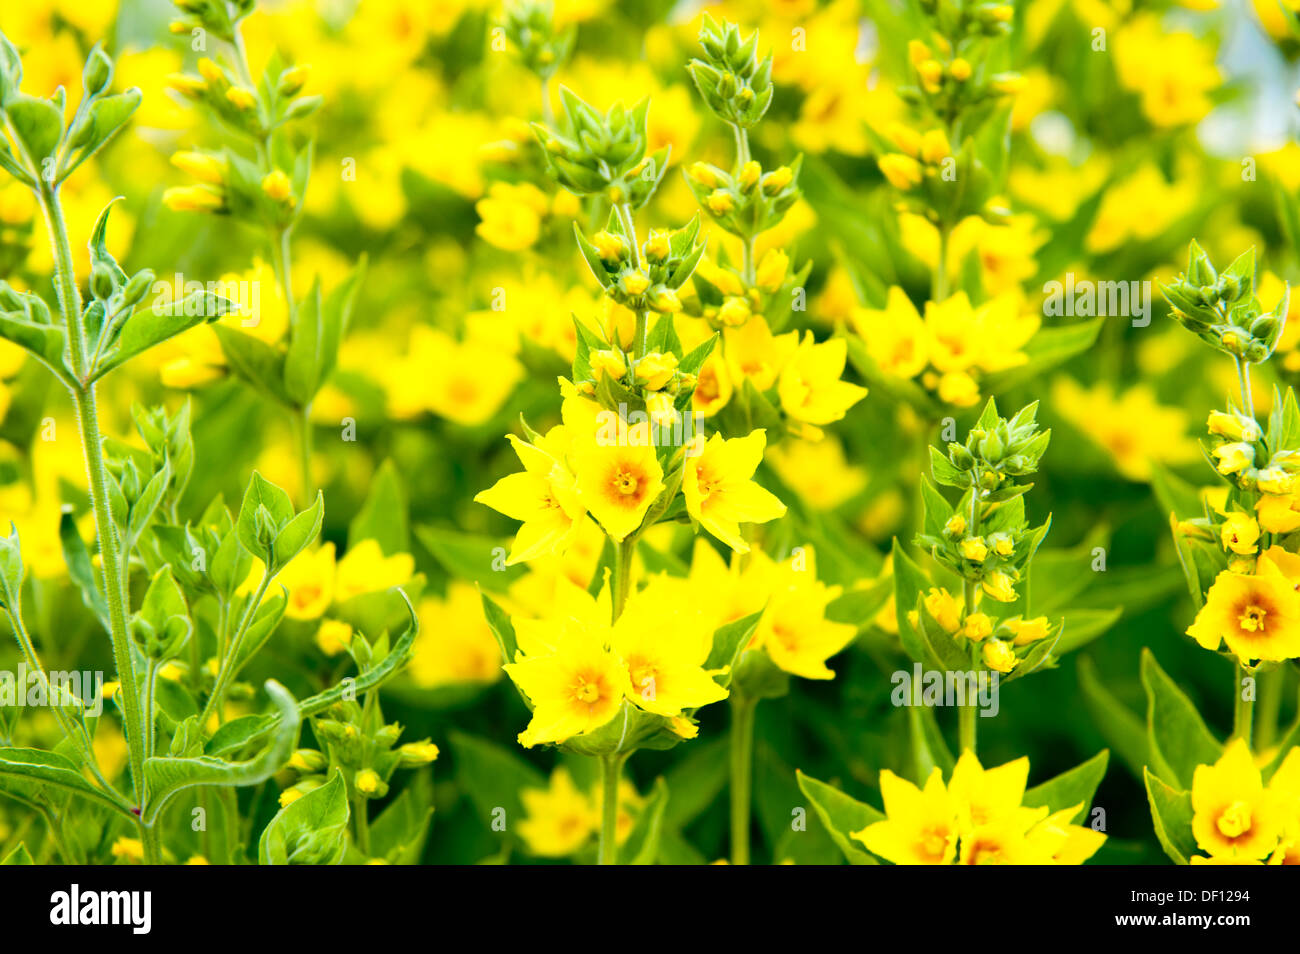 Large Group Of Yellow Flowers With Green Stems And Leaves Stock